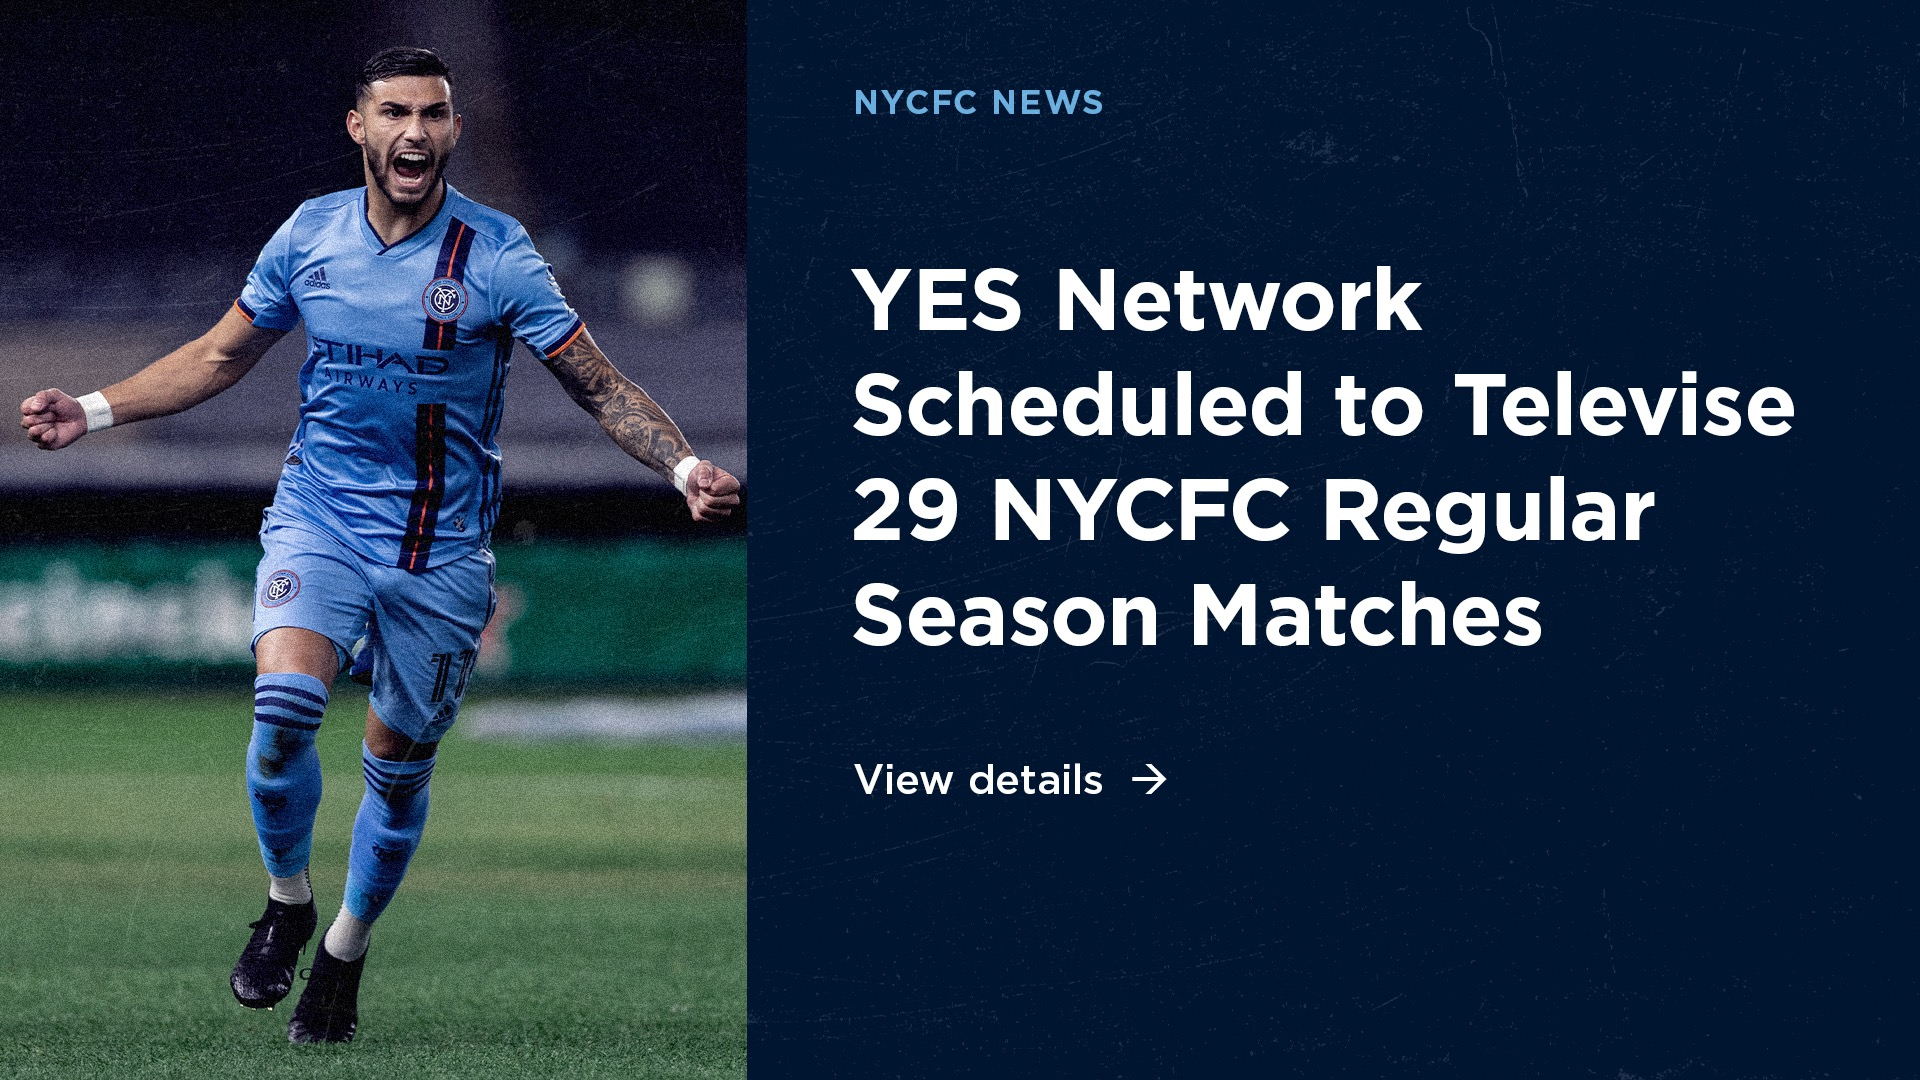 YES Network Scheduled to Televise 29 New York City FC Regular Season Matches | New York City FC